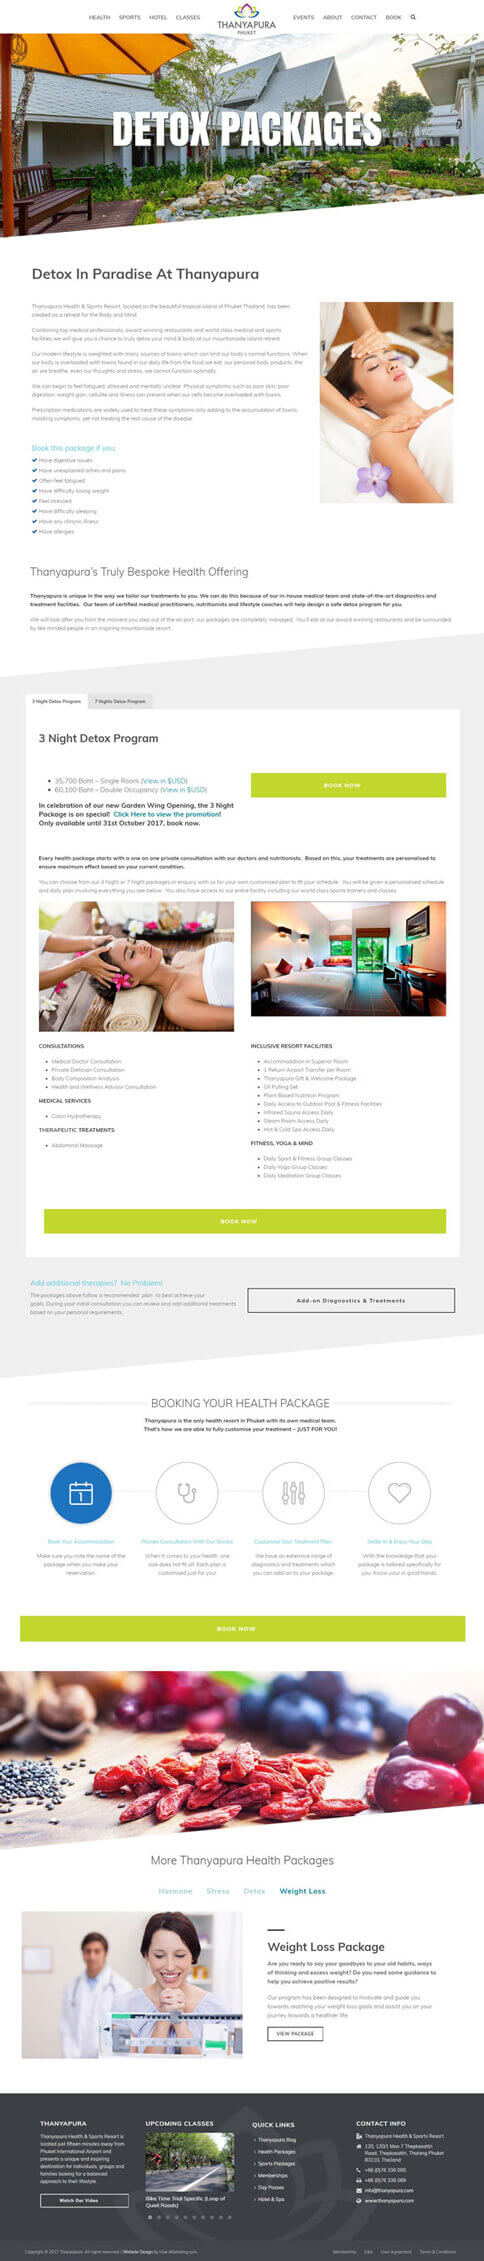 NEW Package Page - Thanyapura Phuket Website Redesign